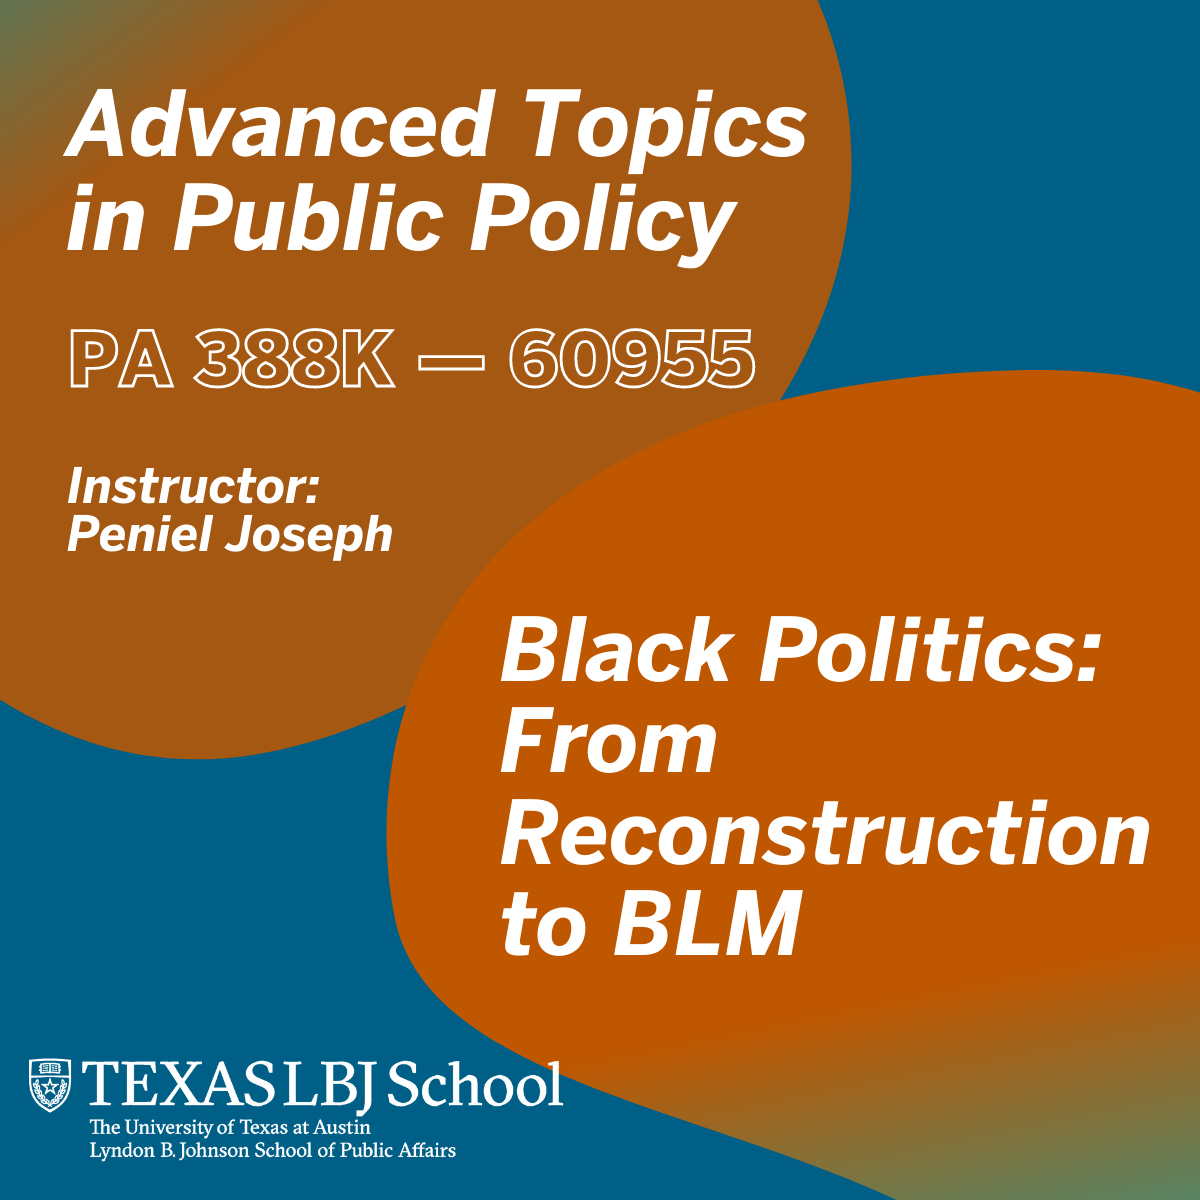 Fall 2021 class: Advanced Topics in Public Policy: Black Politics: From Reconstruction to BLM